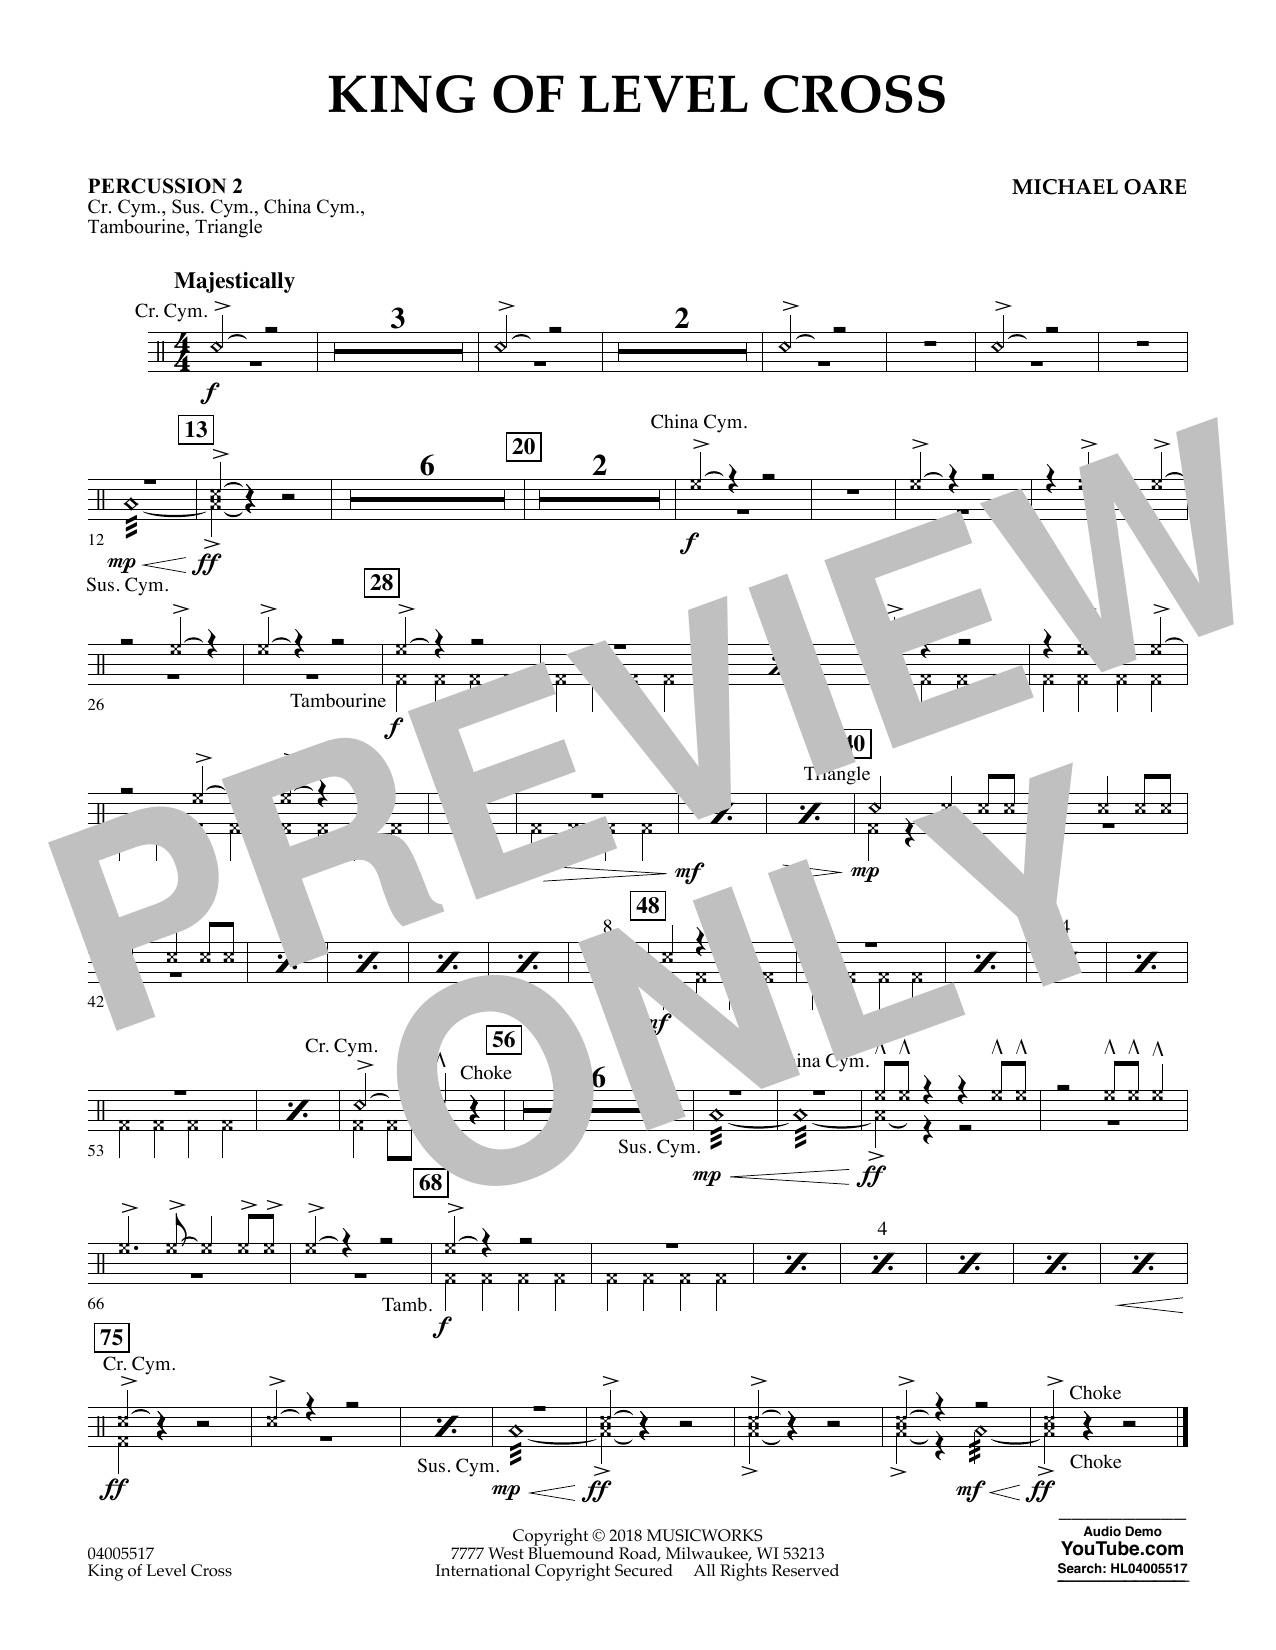 Michael Oare King of Level Cross - Percussion 2 sheet music notes and chords. Download Printable PDF.